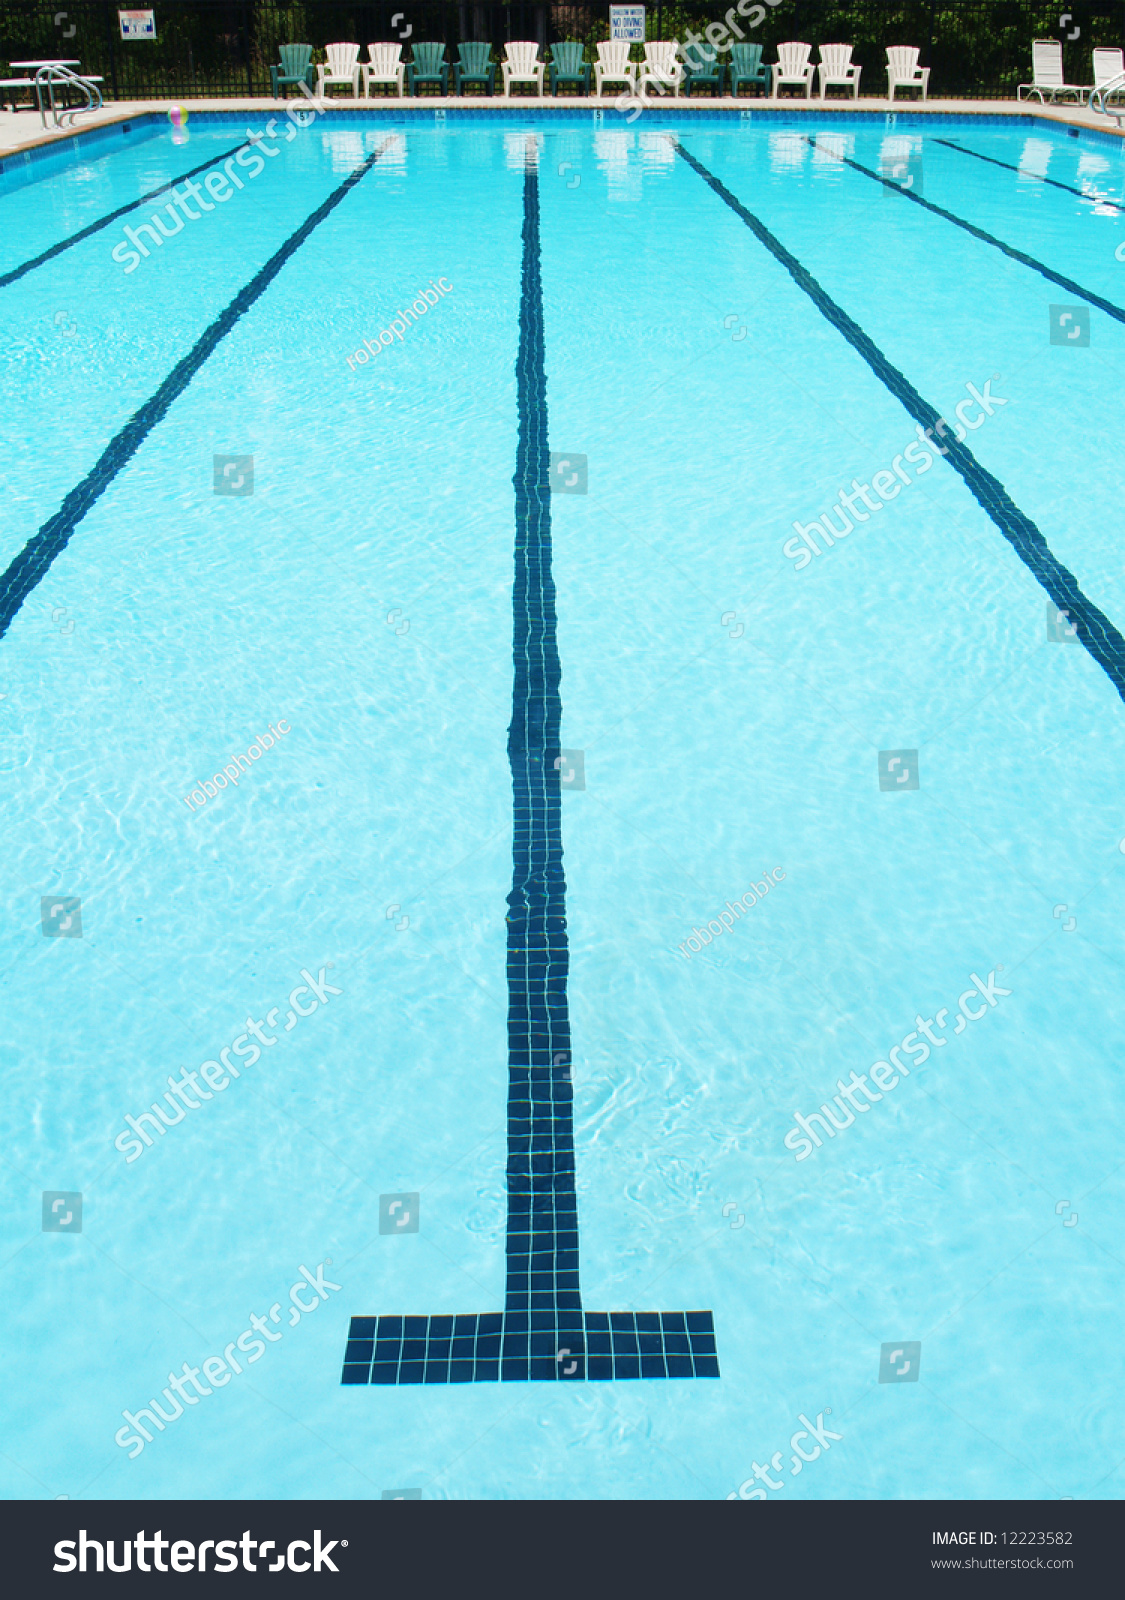 Olympic Swimming Pool Lanes olympic sized swimming pool lane stripe stock photo 12223582